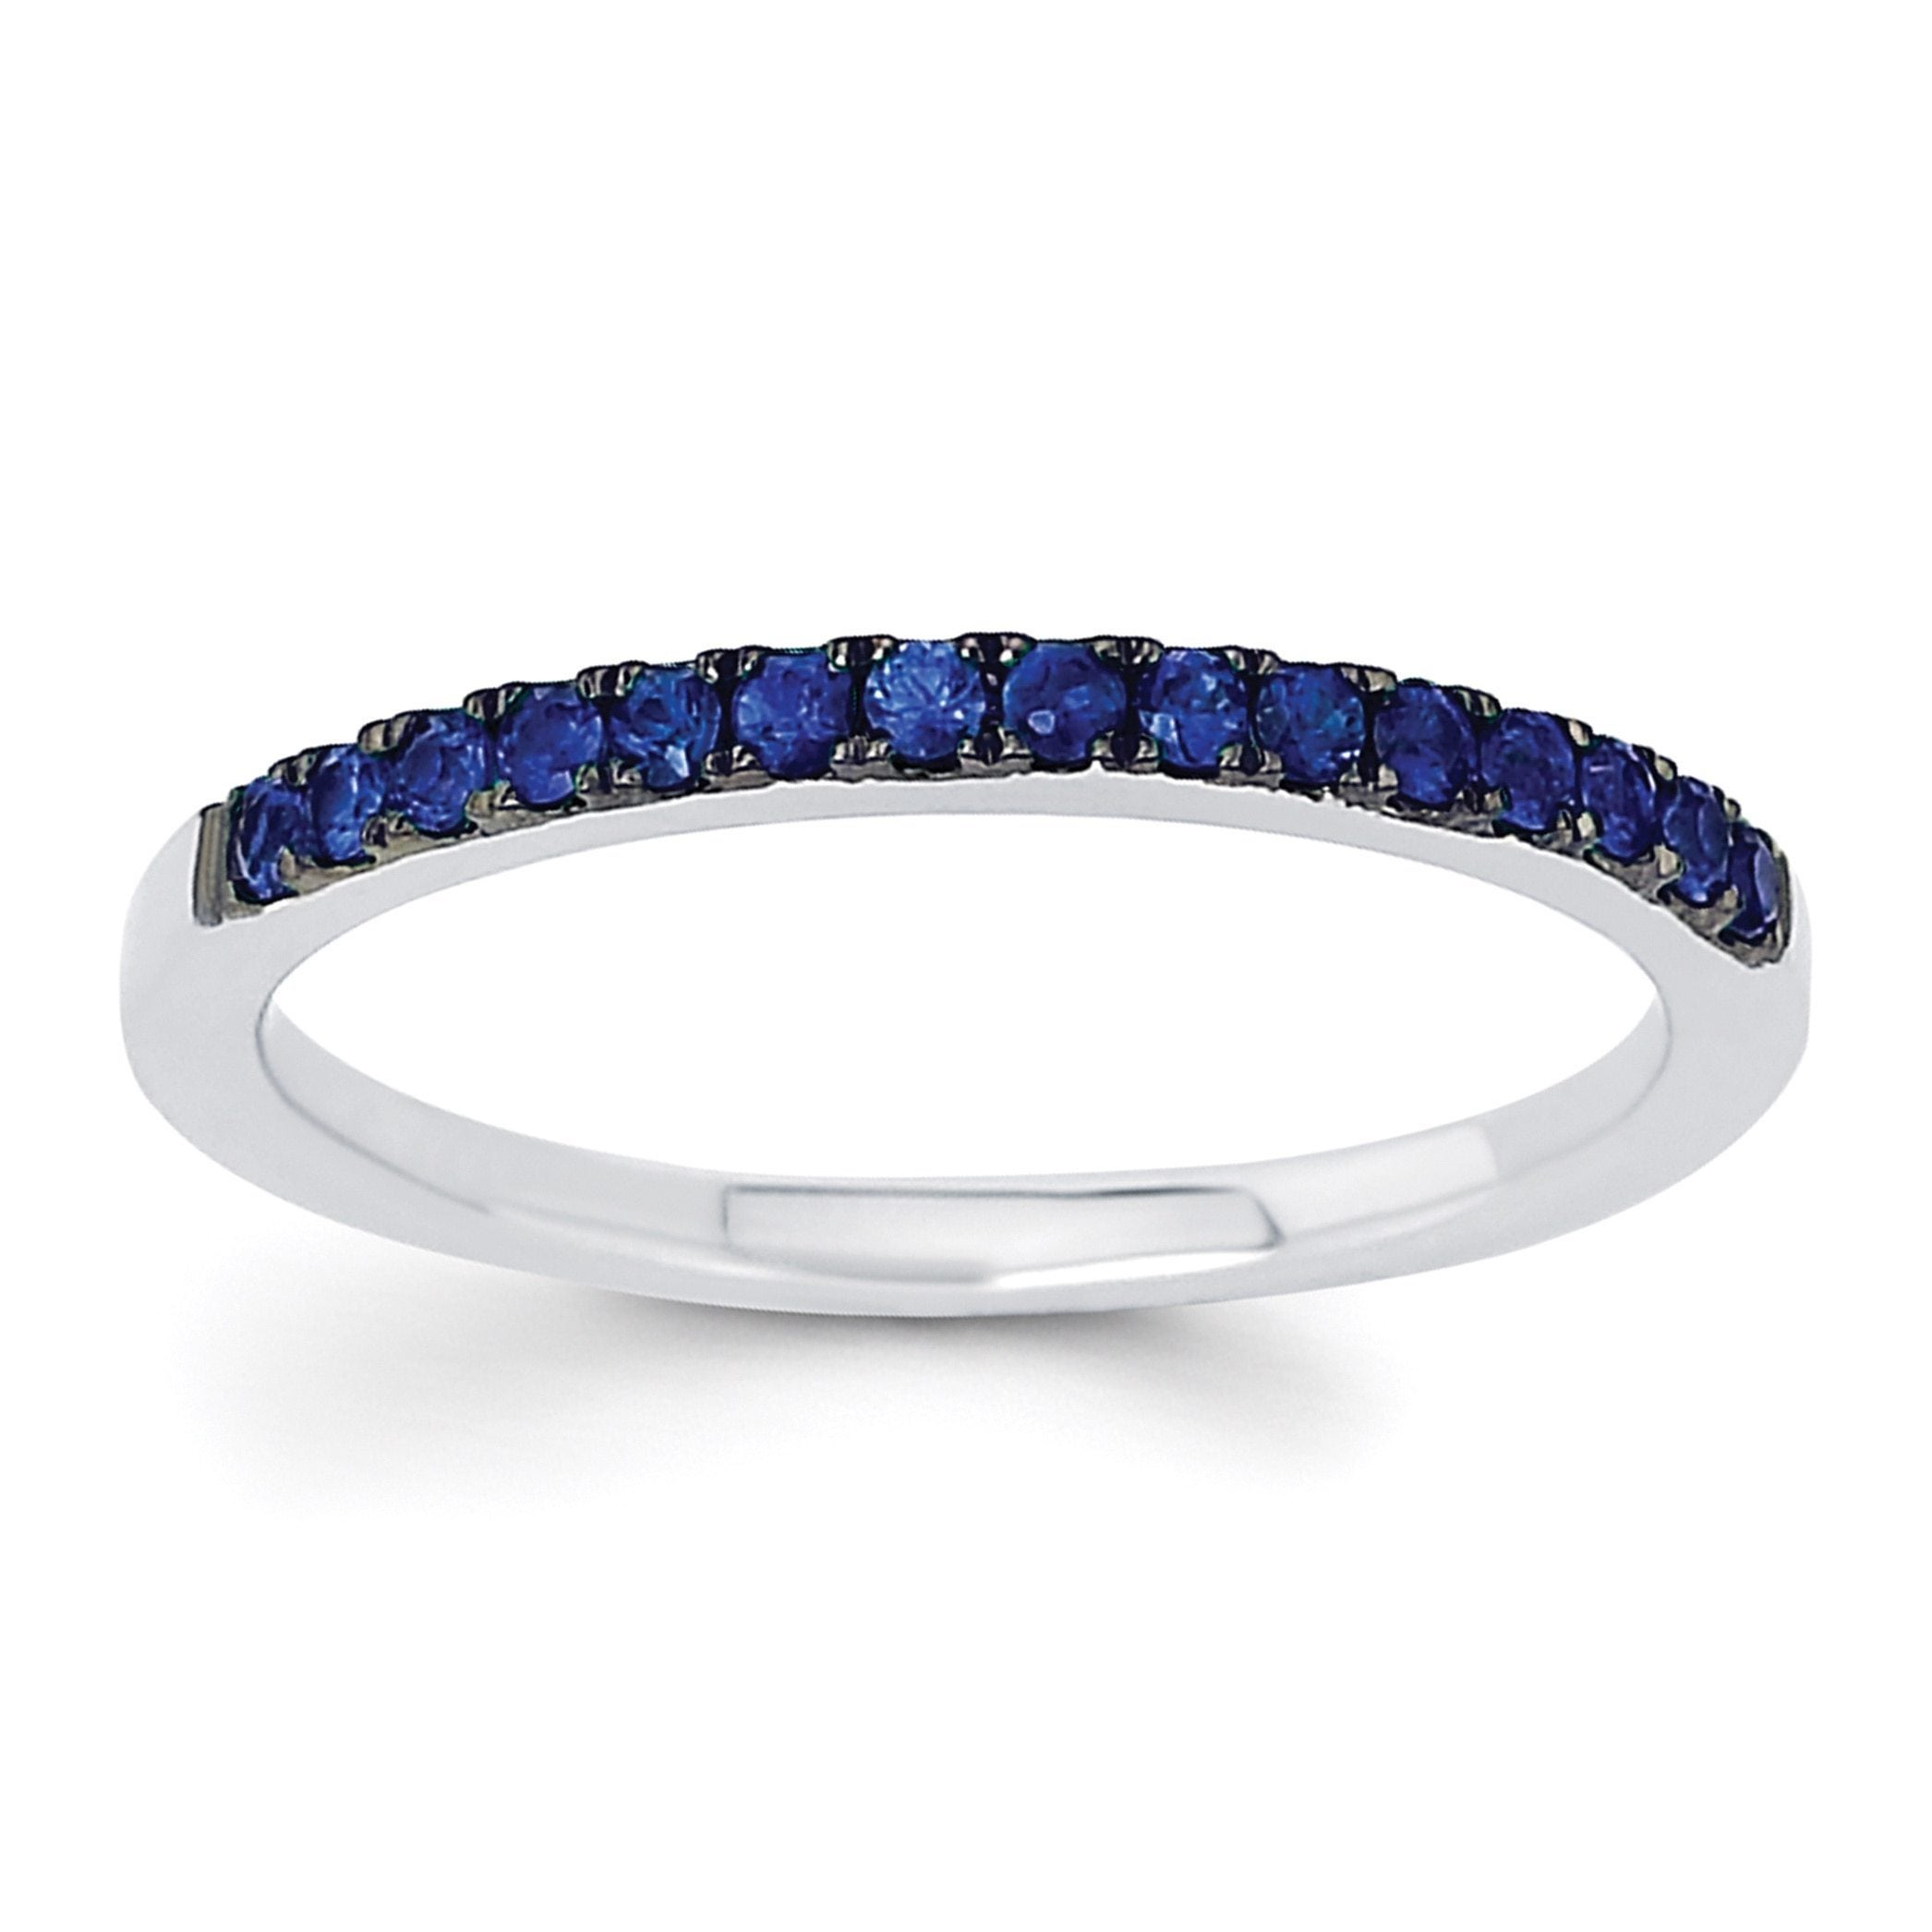 sale rings ring at diamond j sapphire master wedding suchy peter jewelry for engagement carat id blue platinum b light